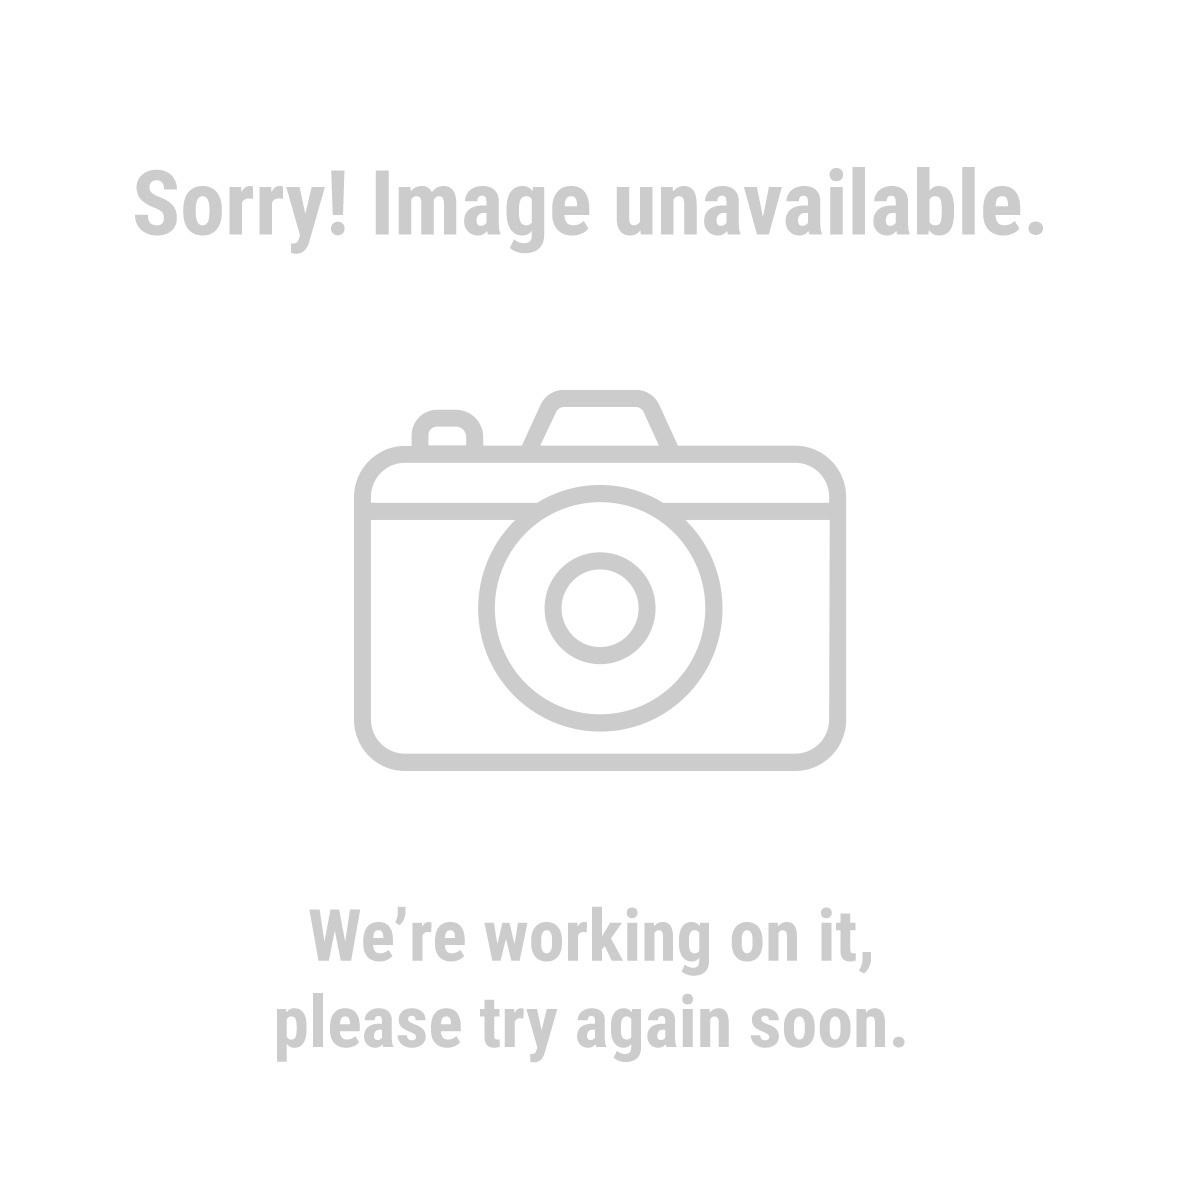 Chicago Electric Welding 61849 90 Amp Flux Welder